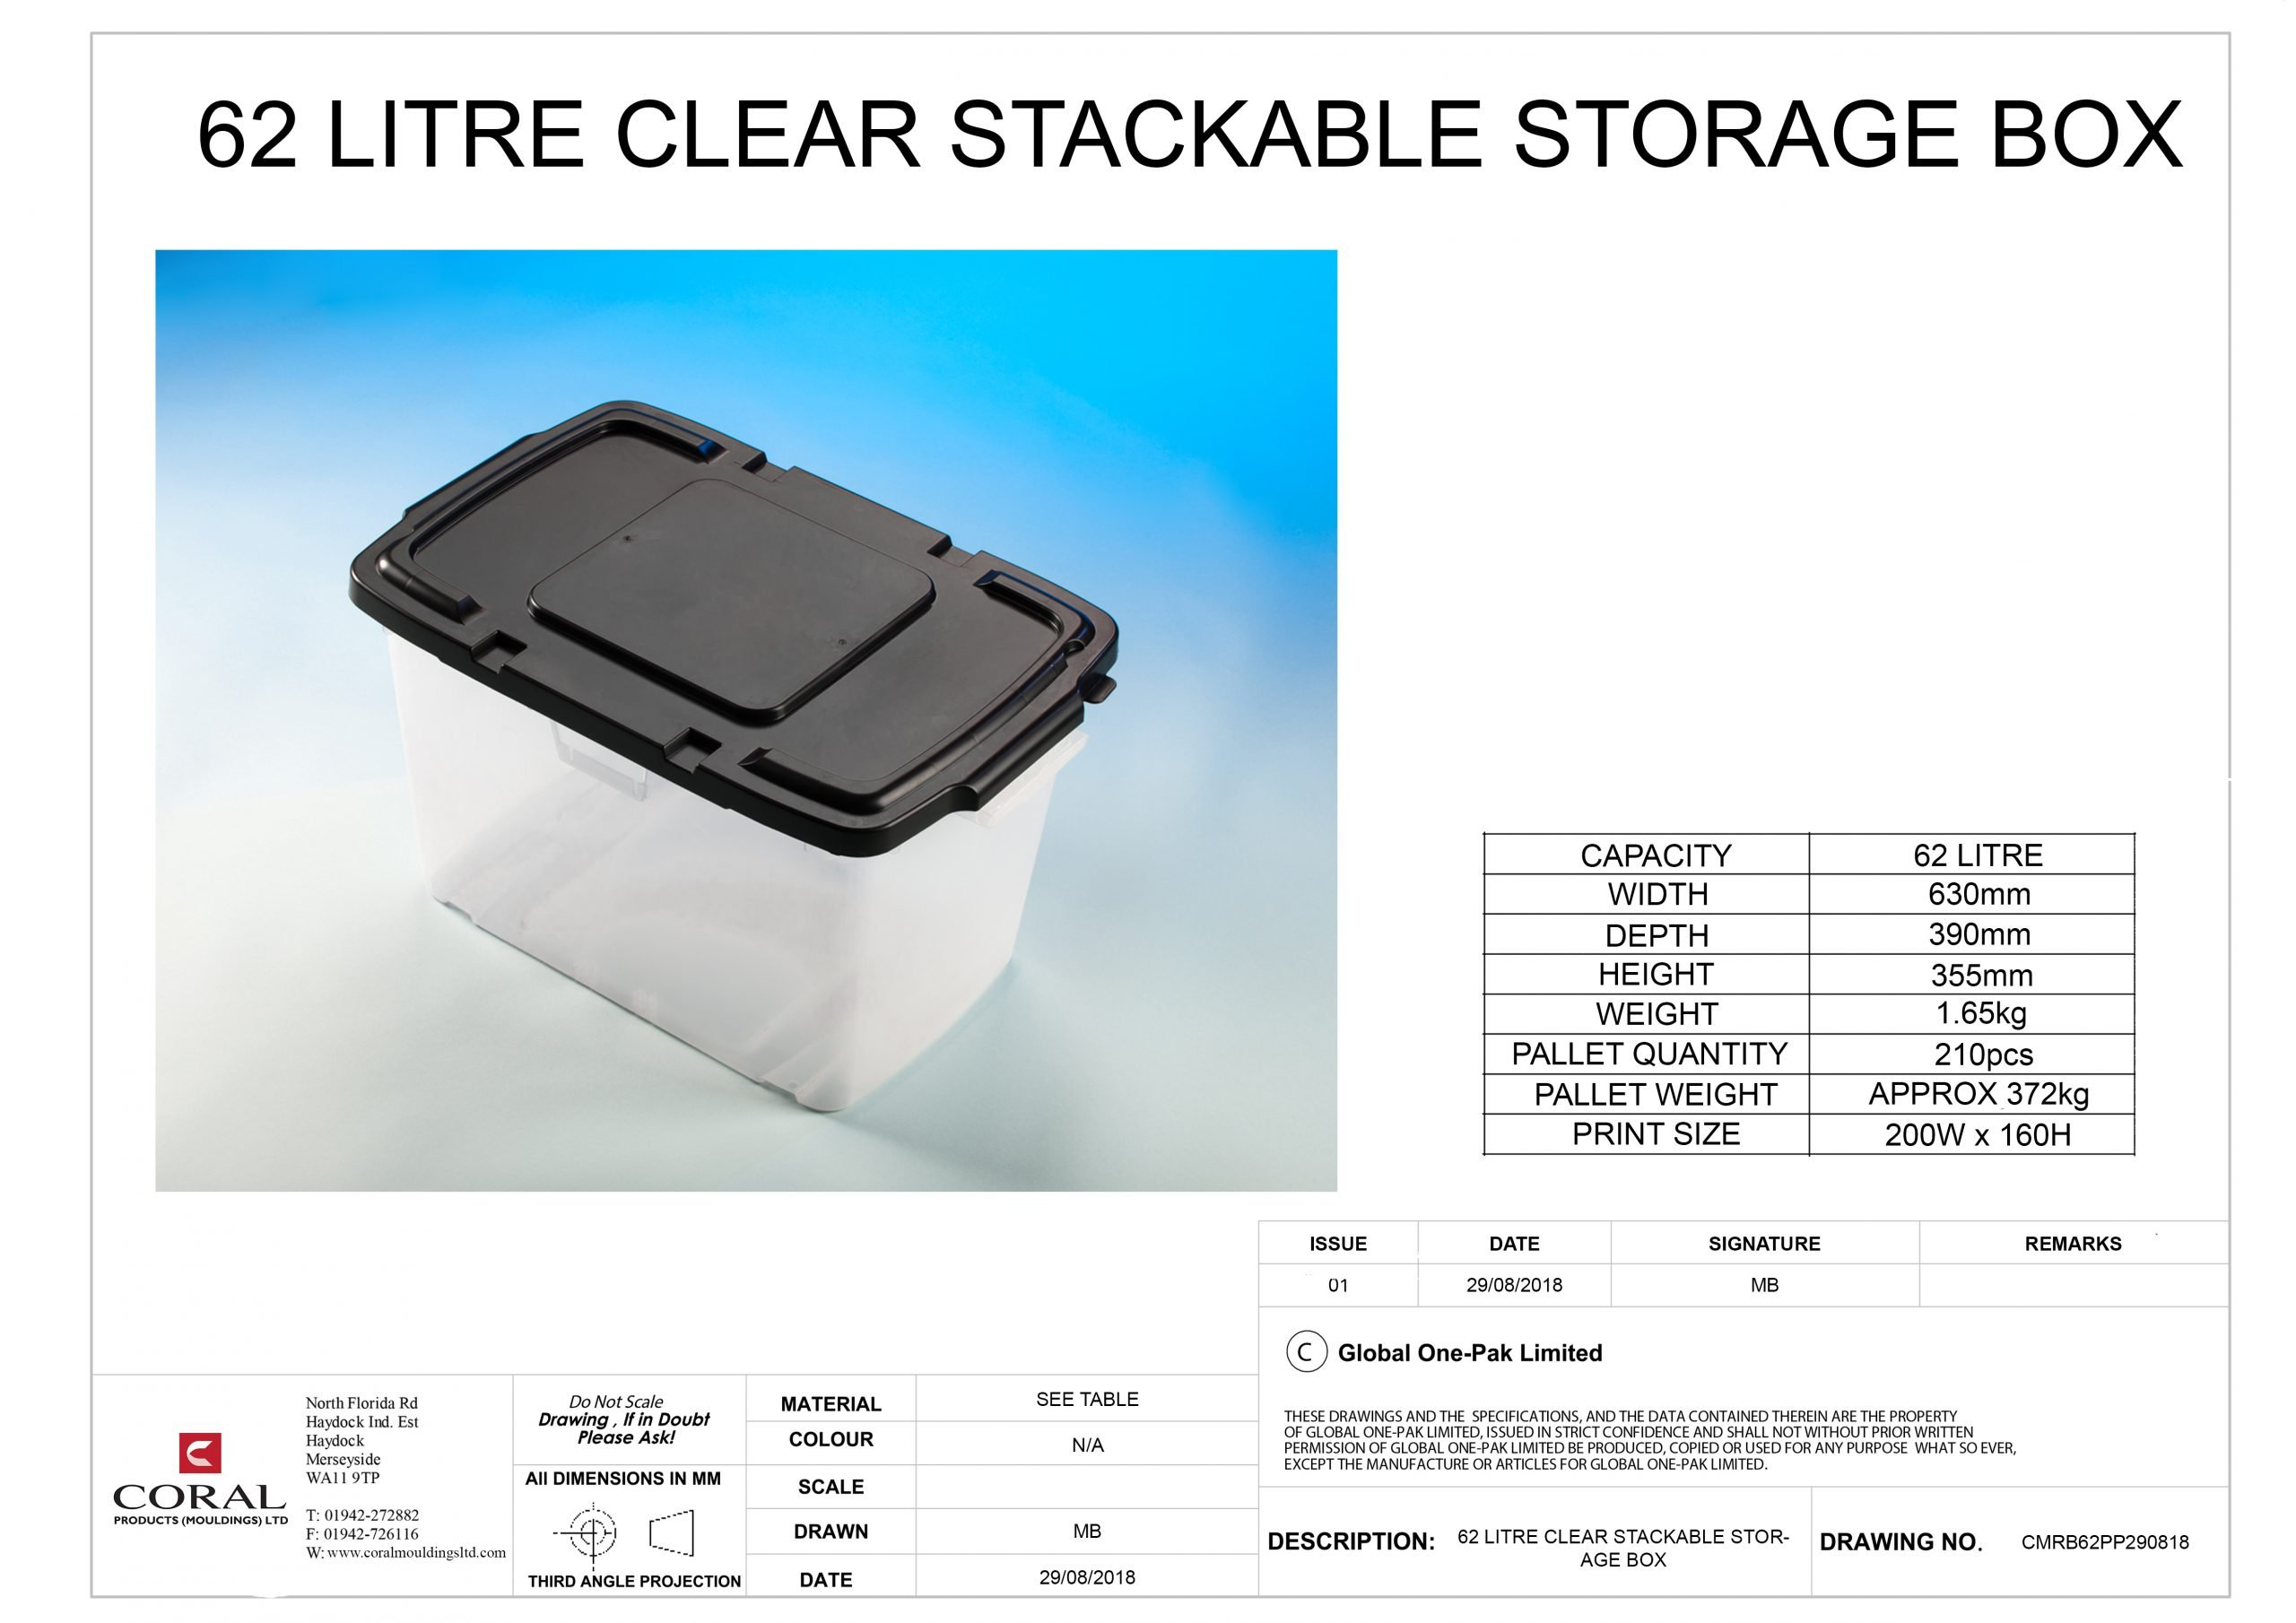 62 litre clear stackable storage solution box Data Sheet scaled